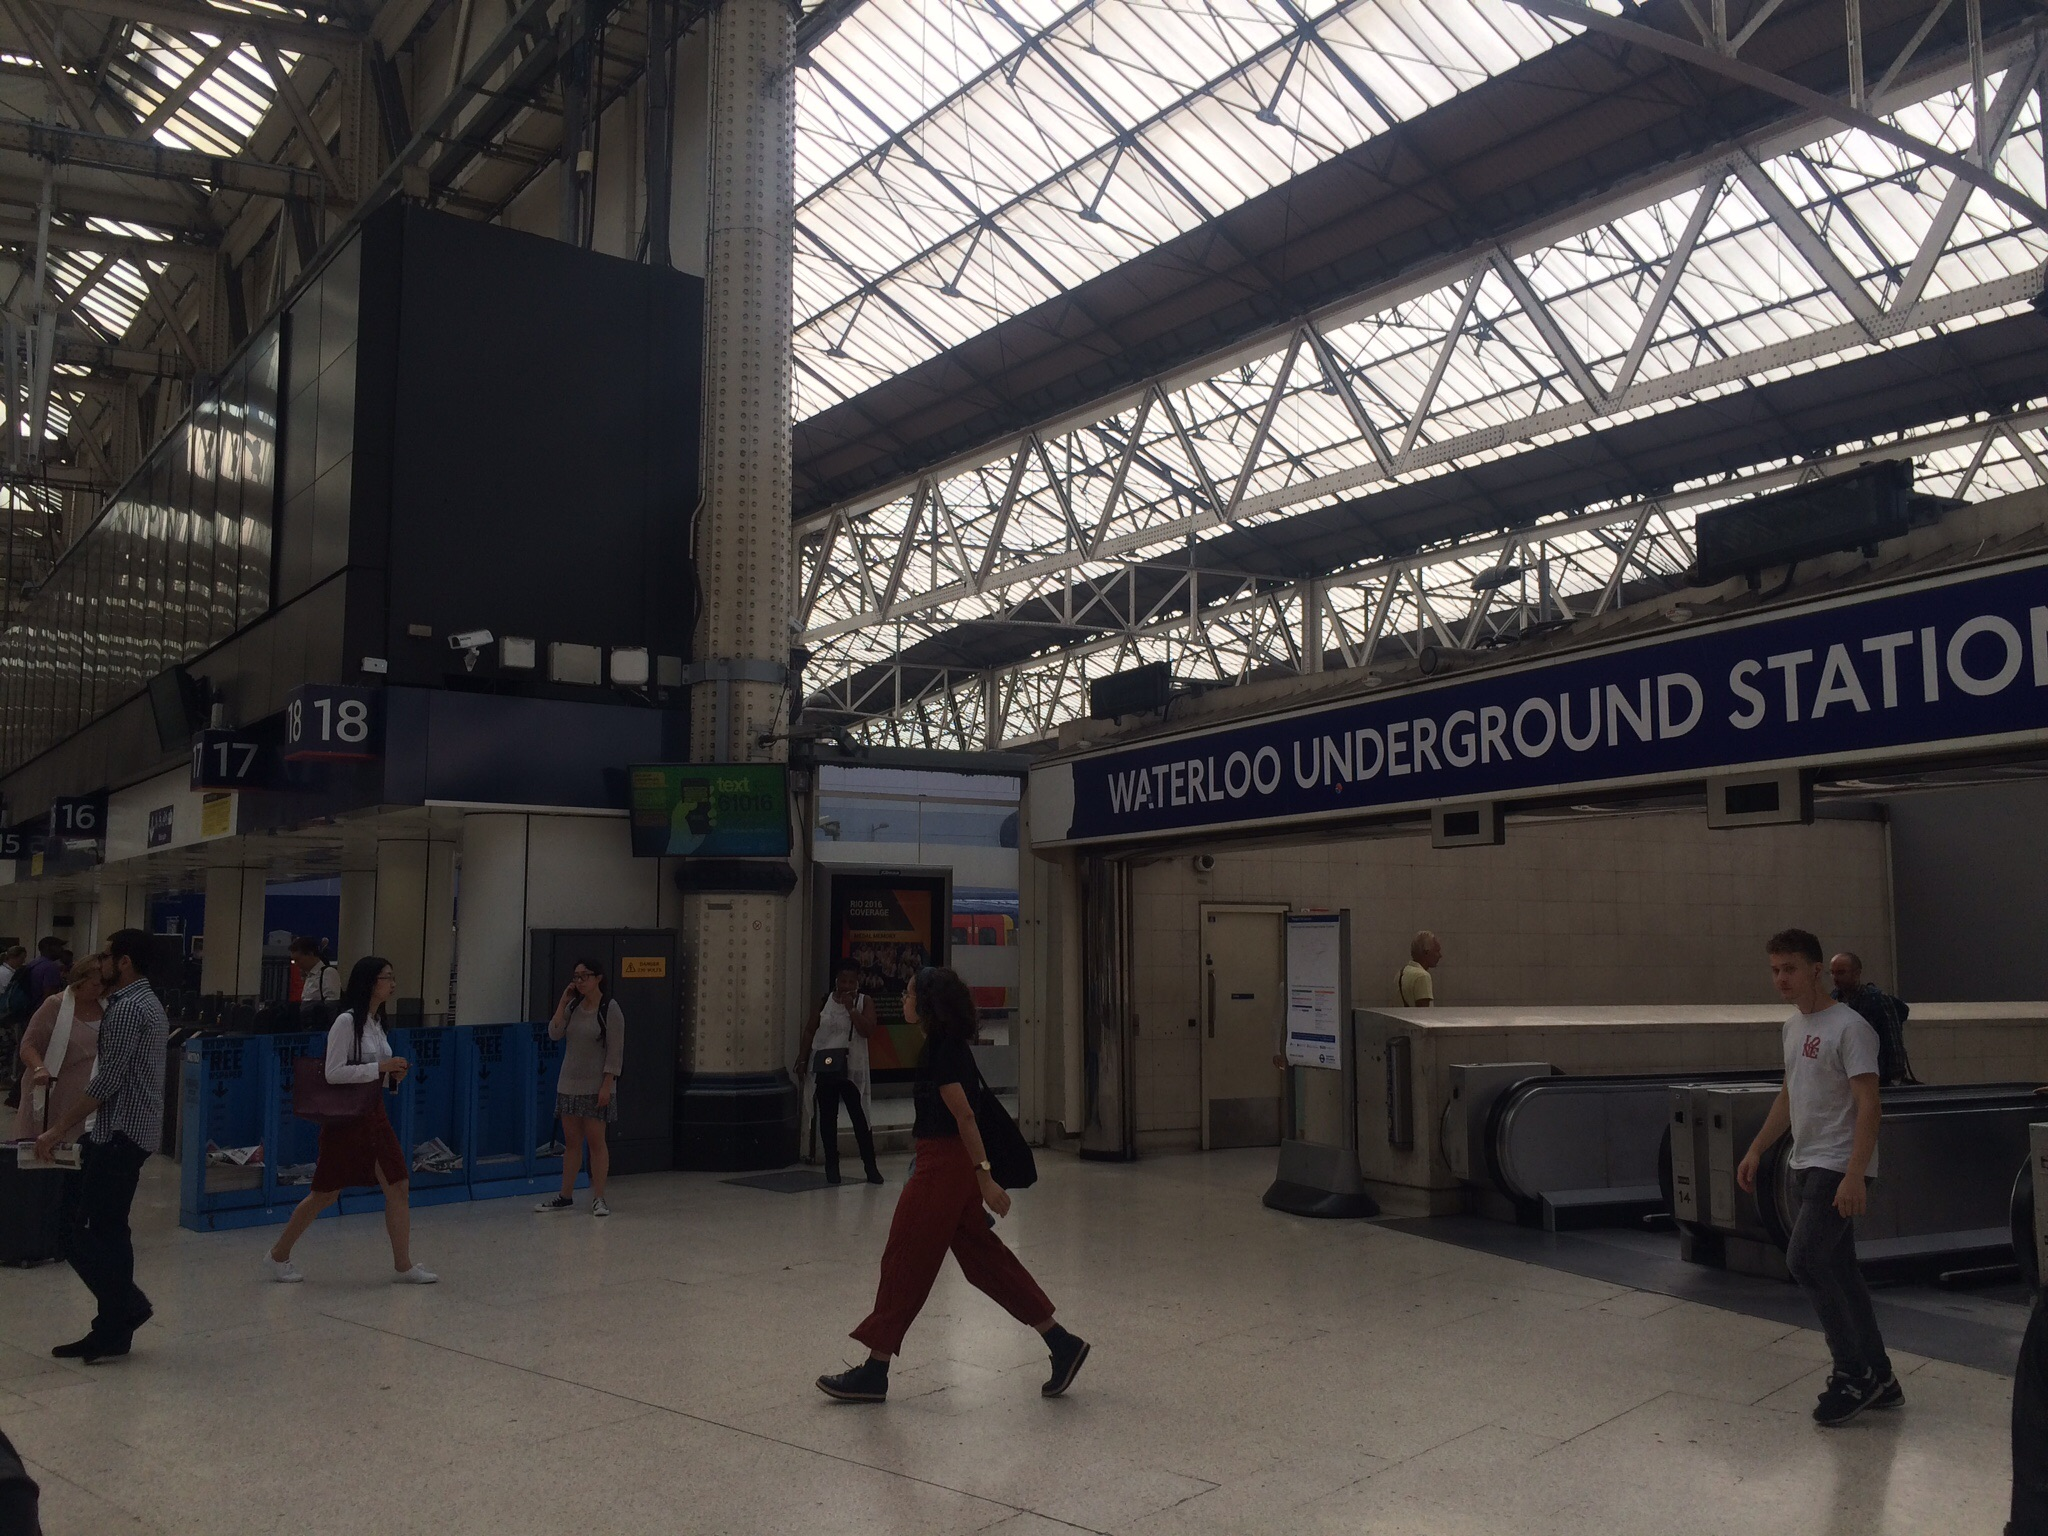 We took the train from Windsor to London's Waterloo Station